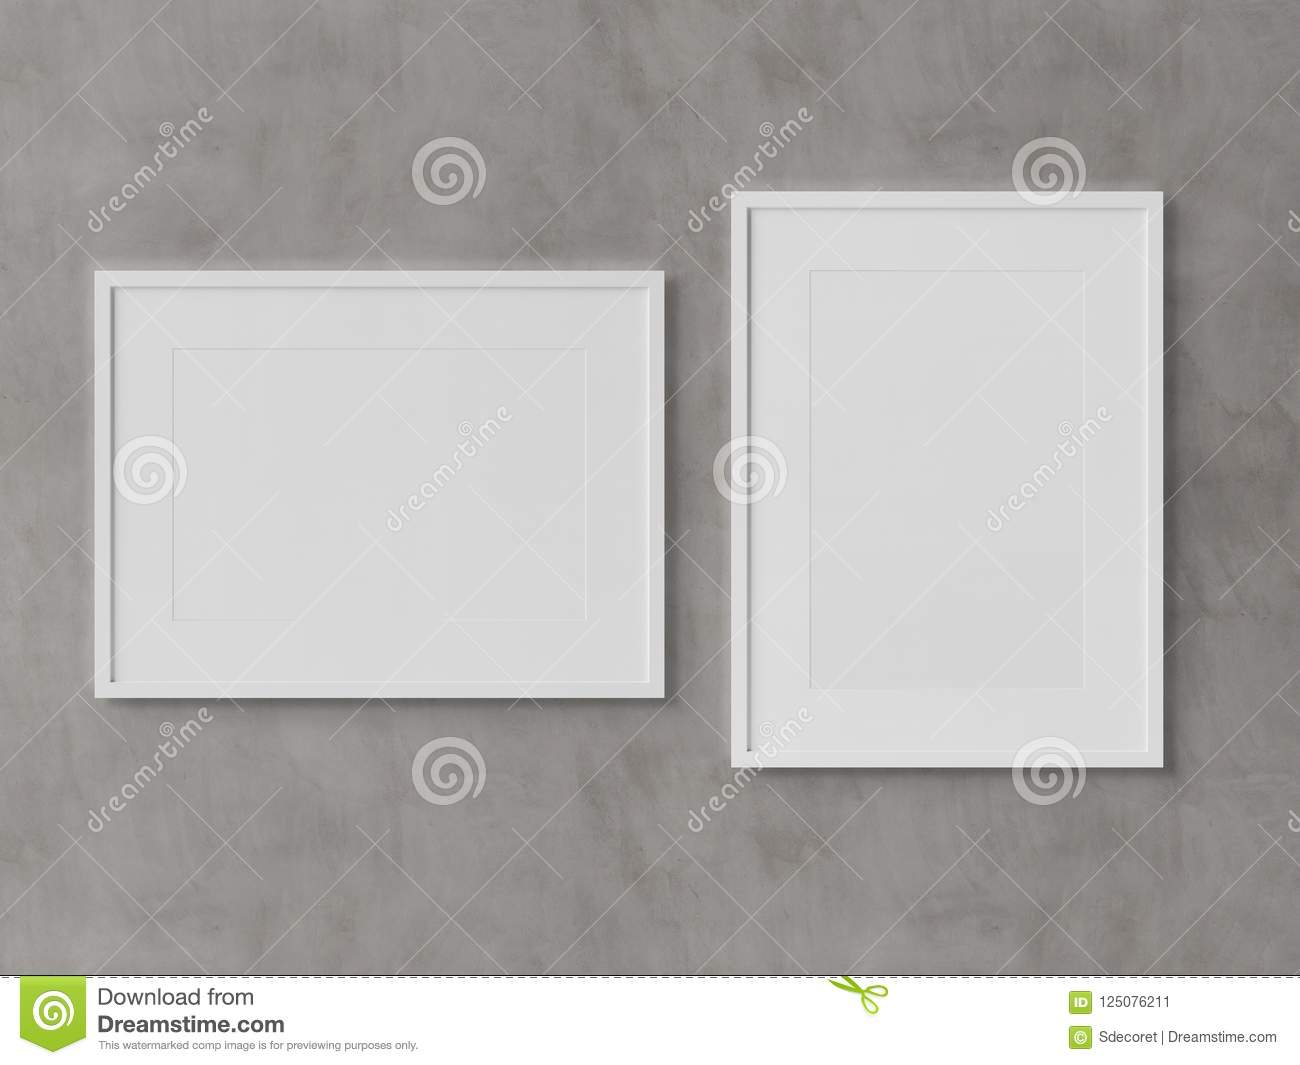 White Rectangular Frames Hanging On A White Wall Mockup 3D Rende ...